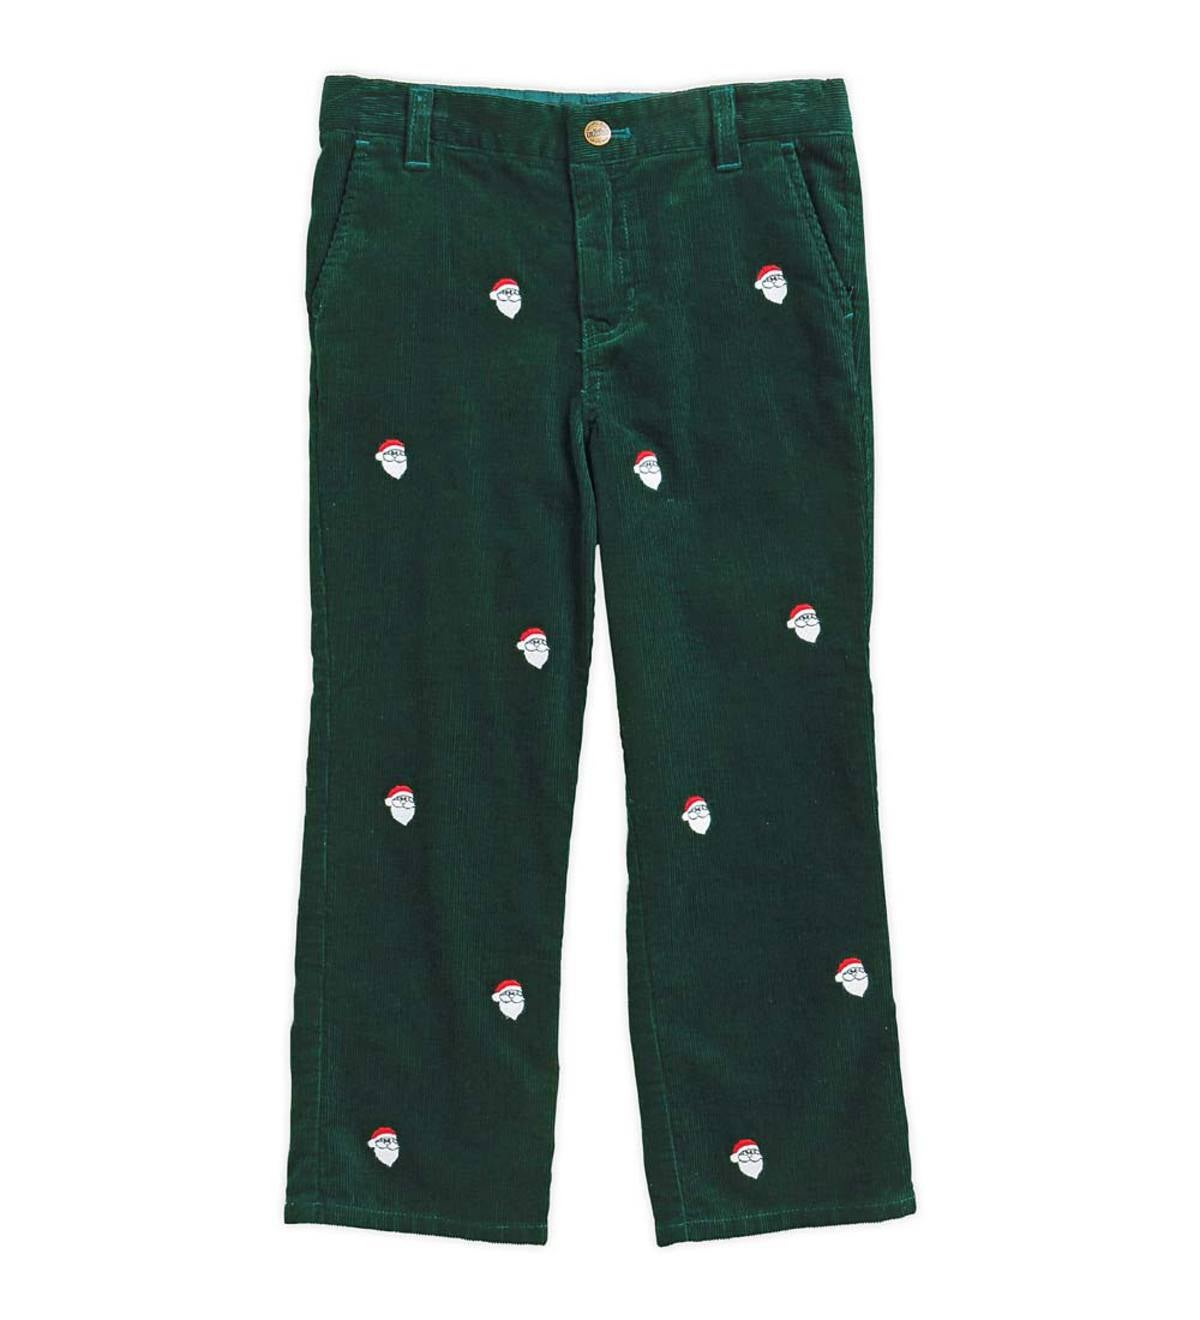 Santa Embroidered Pants - Green - 5